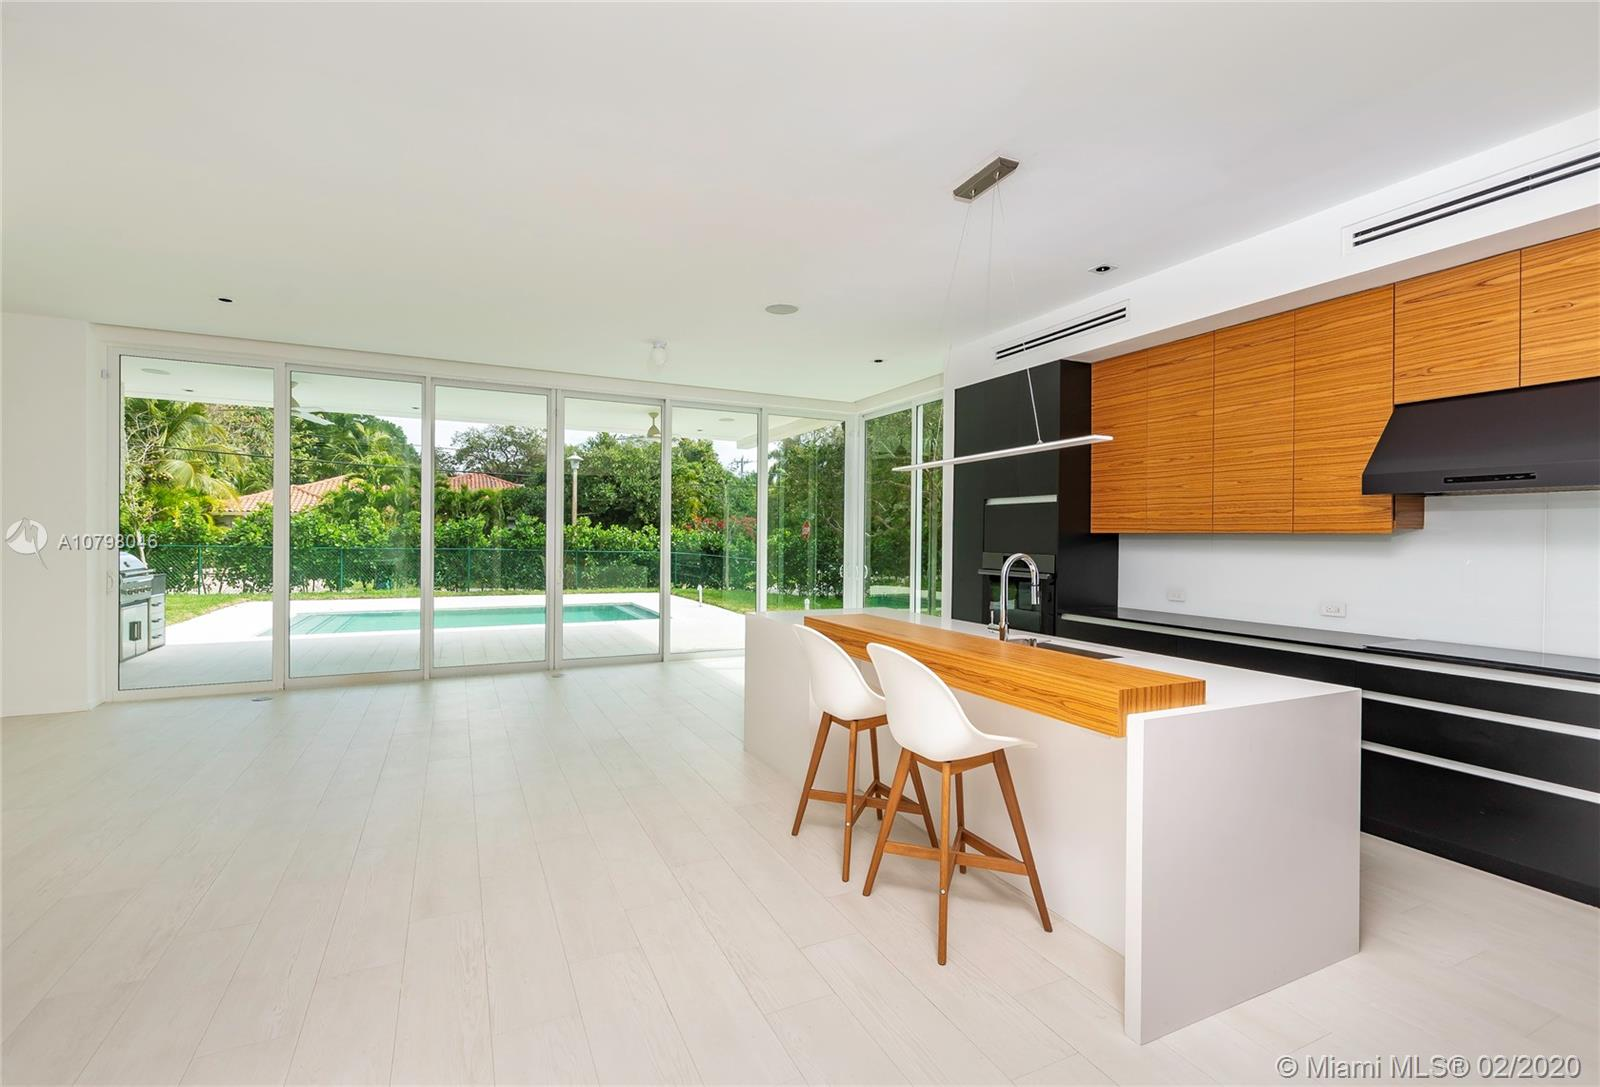 Spectacular contemporary modern new construction home in Coconut Grove. This one story house features an open floor plan with stunning entry w/ ultra high ceilings. There is an abundance of natural light with floor to ceiling sliding glass doors in the living areas, and porcelain floors throughout great room, dining and kitchen overlooking the wonderful outdoors. Enjoy the beautiful gourmet kitchen with high-end appliances and quartz countertops. The home sits on an 11,500sf corner lot. A modern terrace with outdoor summer kitchen and a comfortable extended entertainment area overlooks the pool.Floorplan features 3,455 Interior SF and total building 4,100 SF.EASY TO SHOW: Appointment through ShowingAssistance  SUPRA LOCKBOX